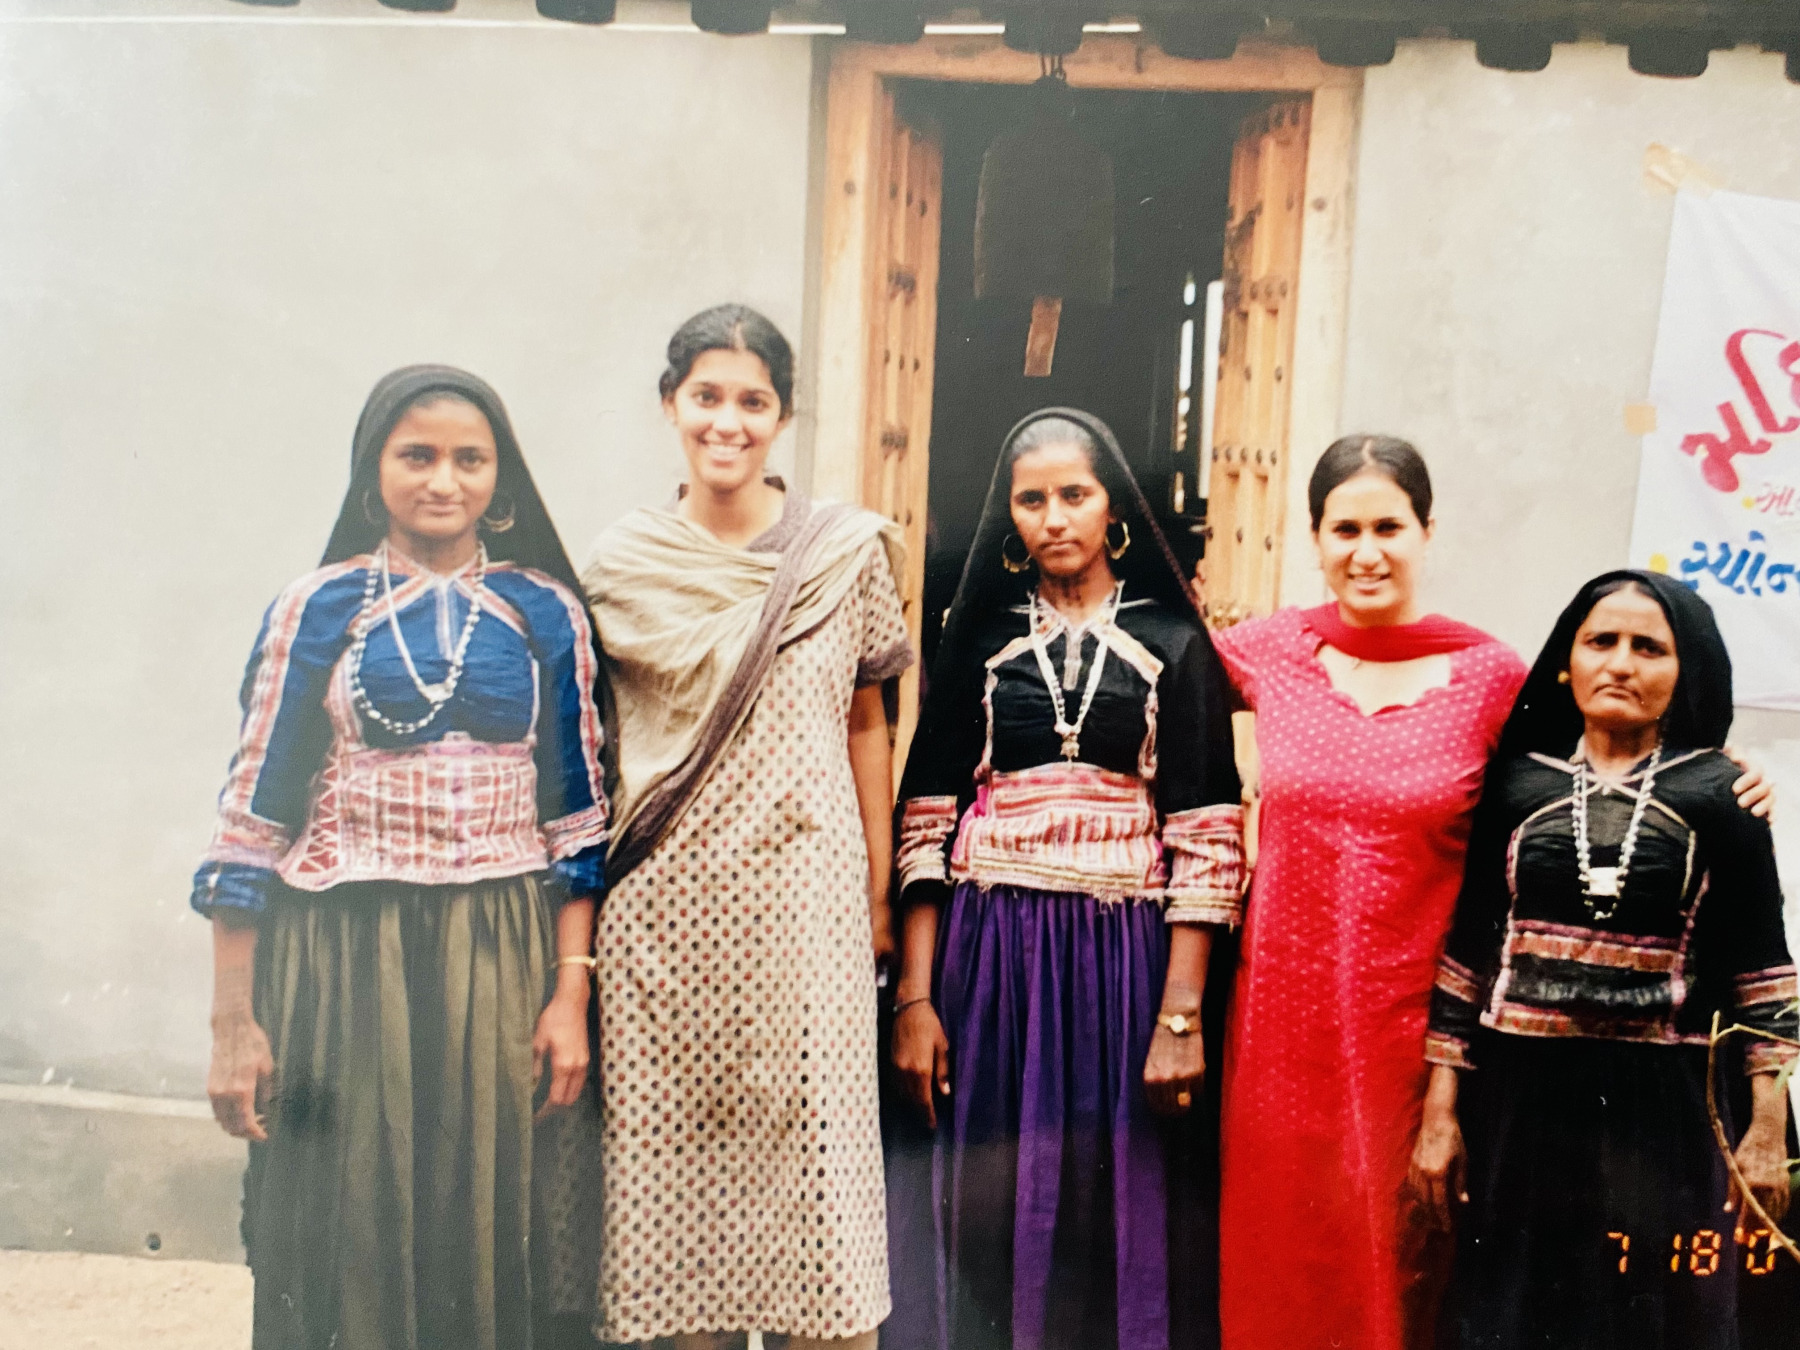 Tanvi and Meenakshi pose with three local women, all clad in colorful traditional outfits with embroidery.